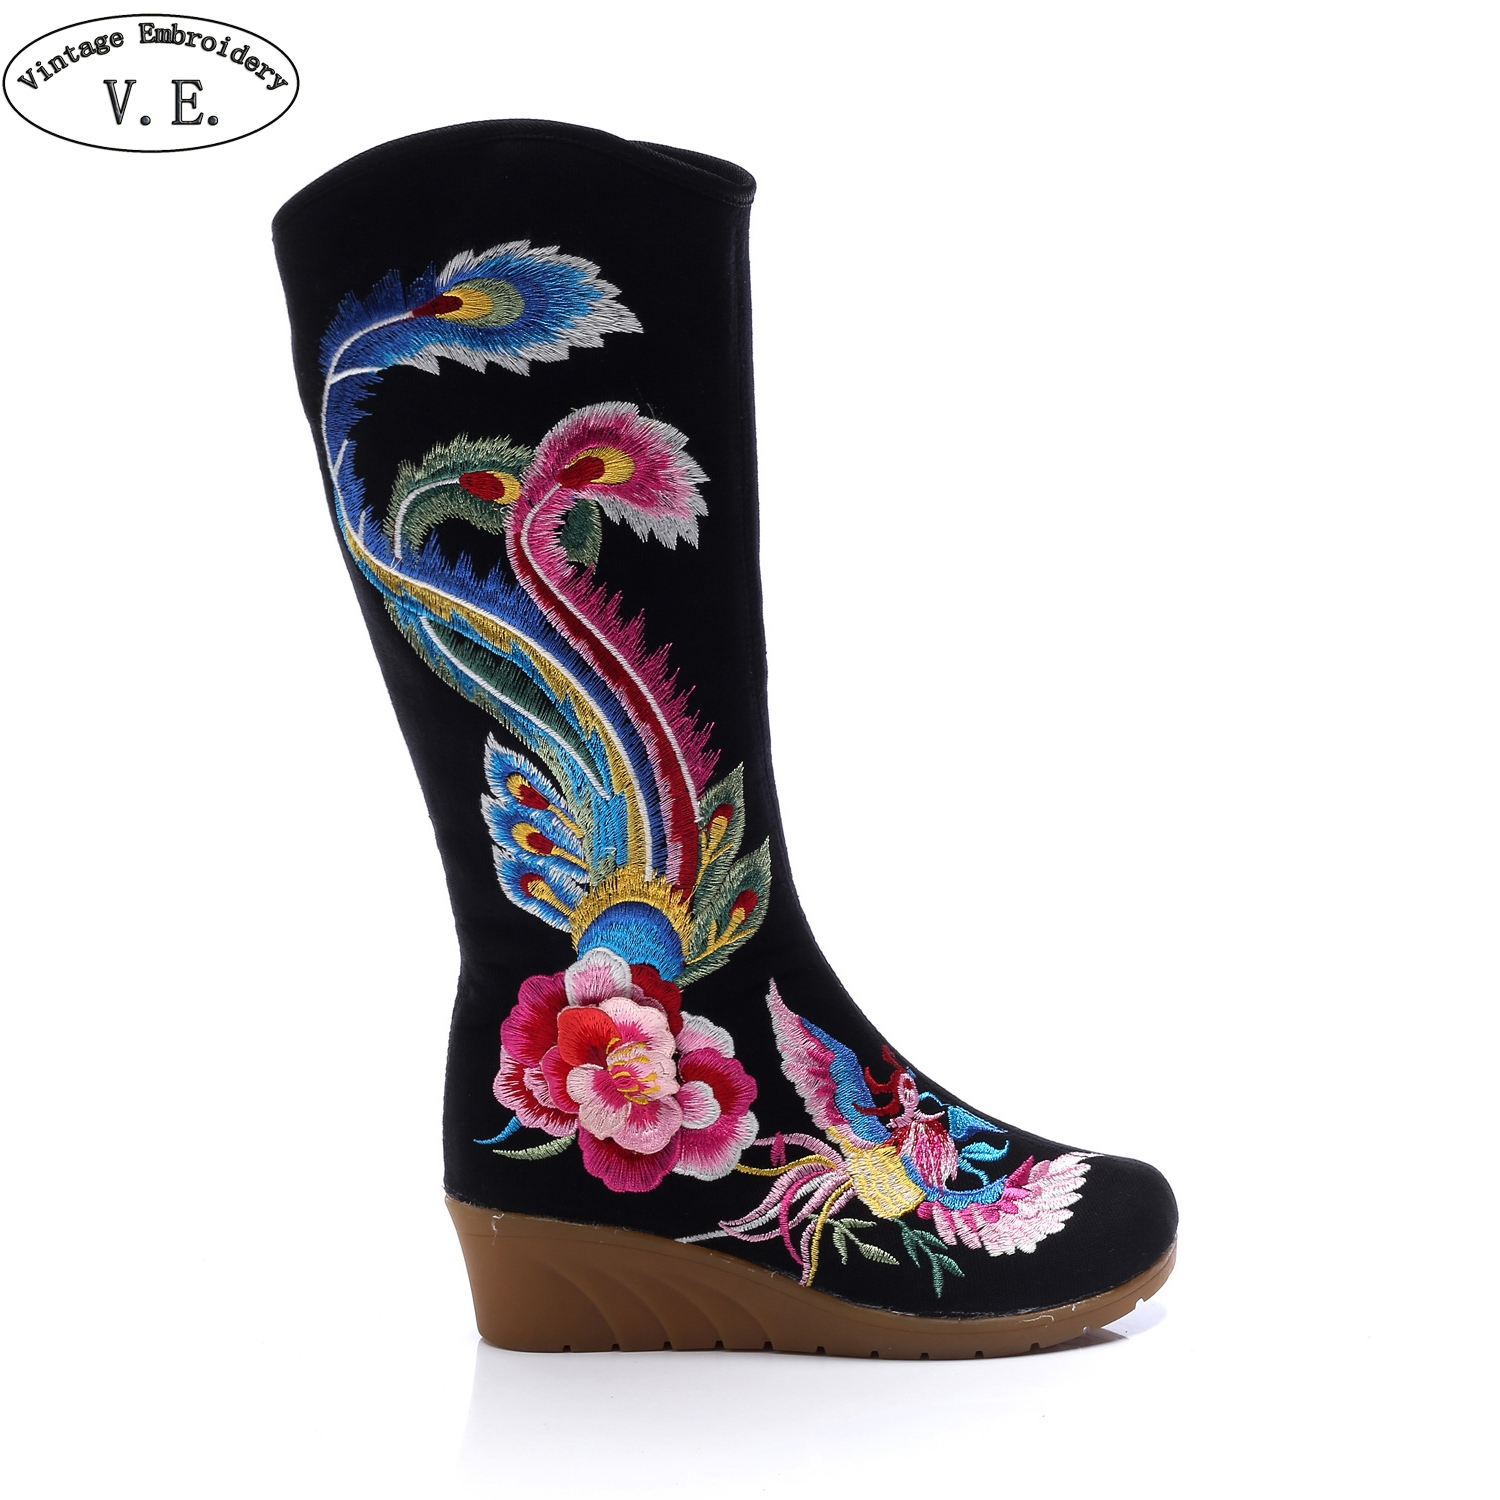 Mixed Style Women Winter Boots Phoenix Embroidered Canvas Mid Boots Wedges High Heels Ladies Tall Black Booties Botas MujerMixed Style Women Winter Boots Phoenix Embroidered Canvas Mid Boots Wedges High Heels Ladies Tall Black Booties Botas Mujer